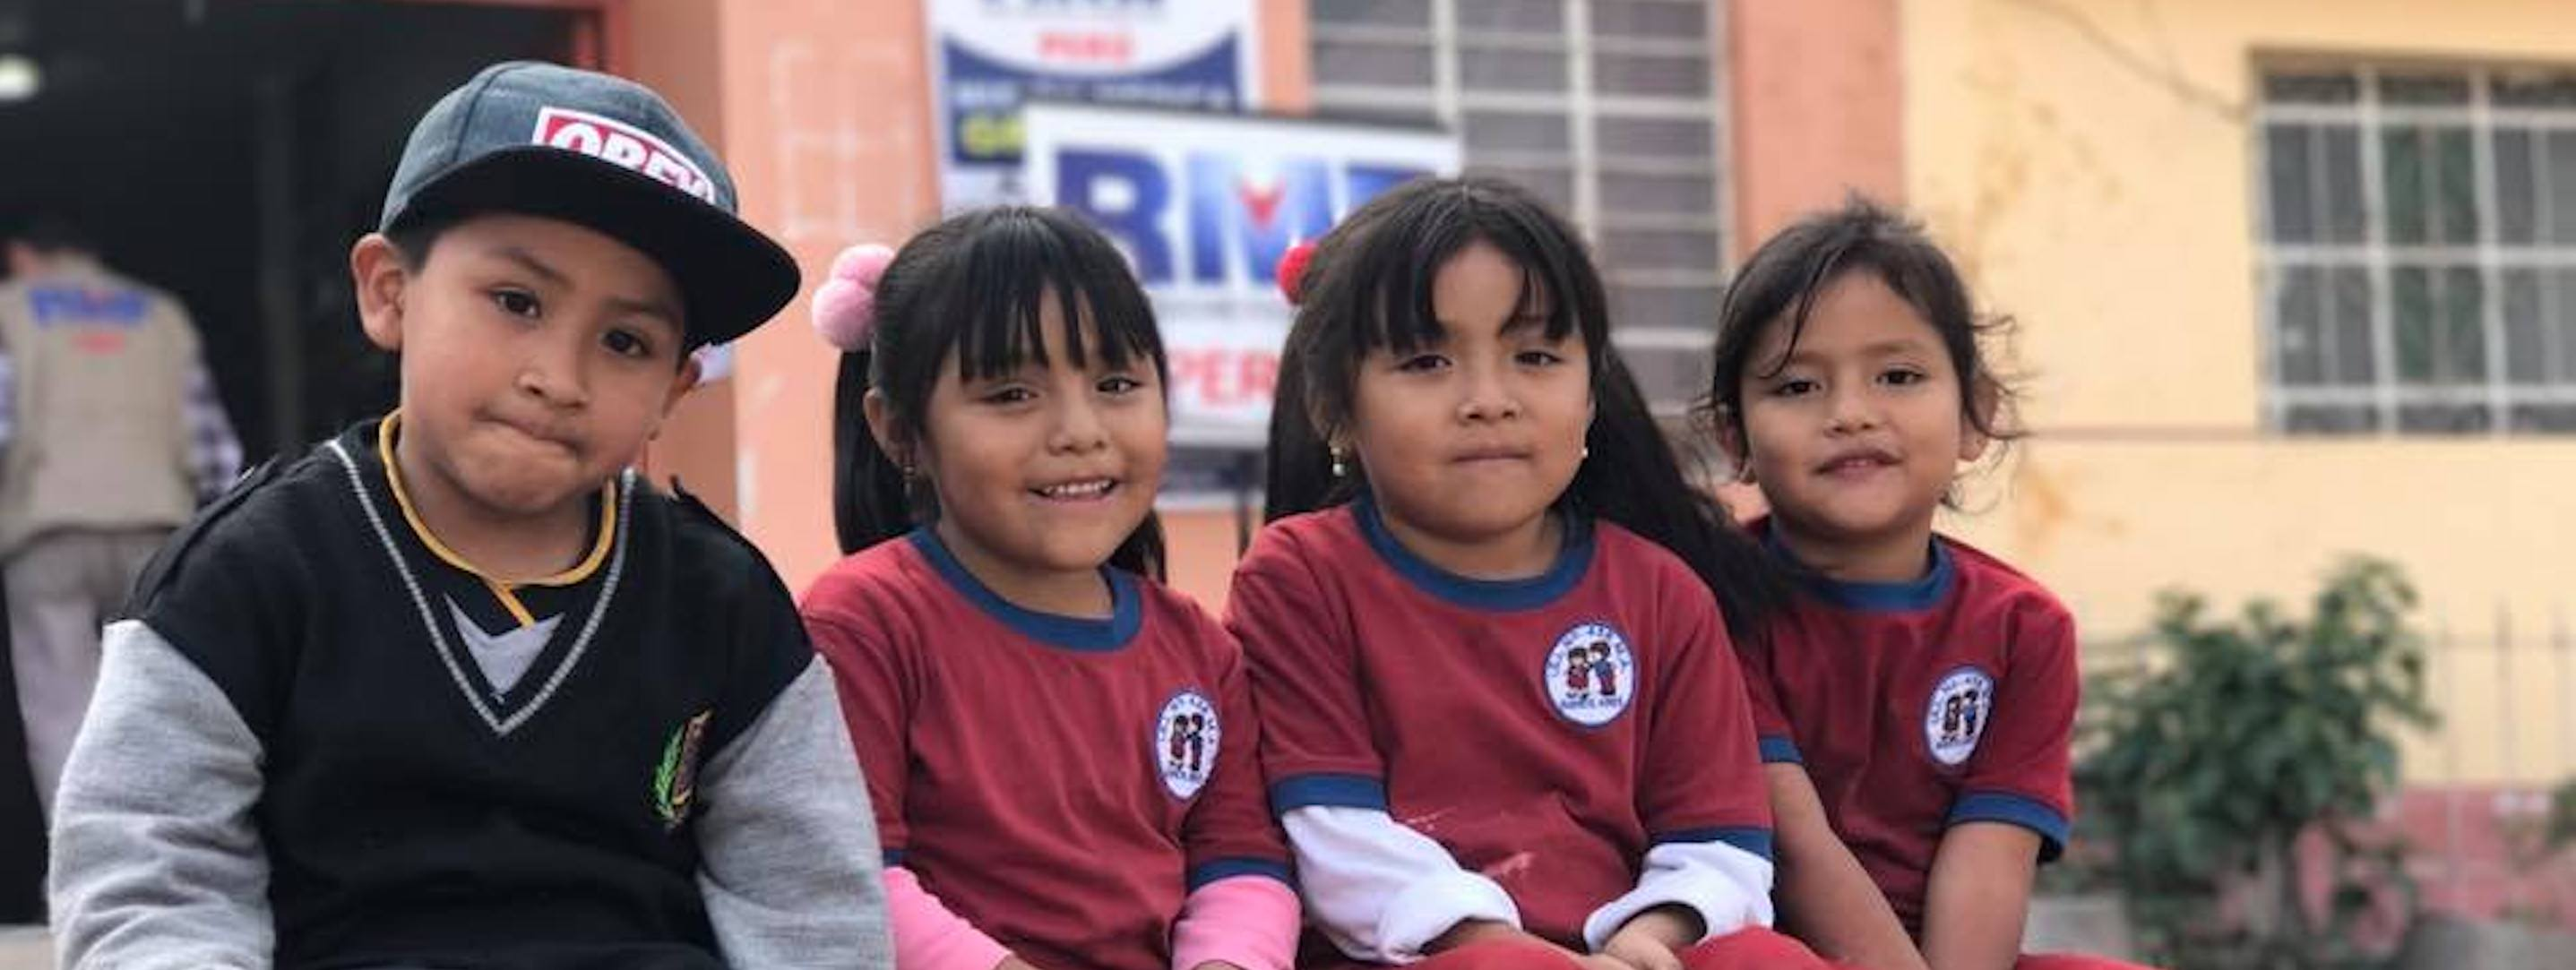 young peruvian children outside of school